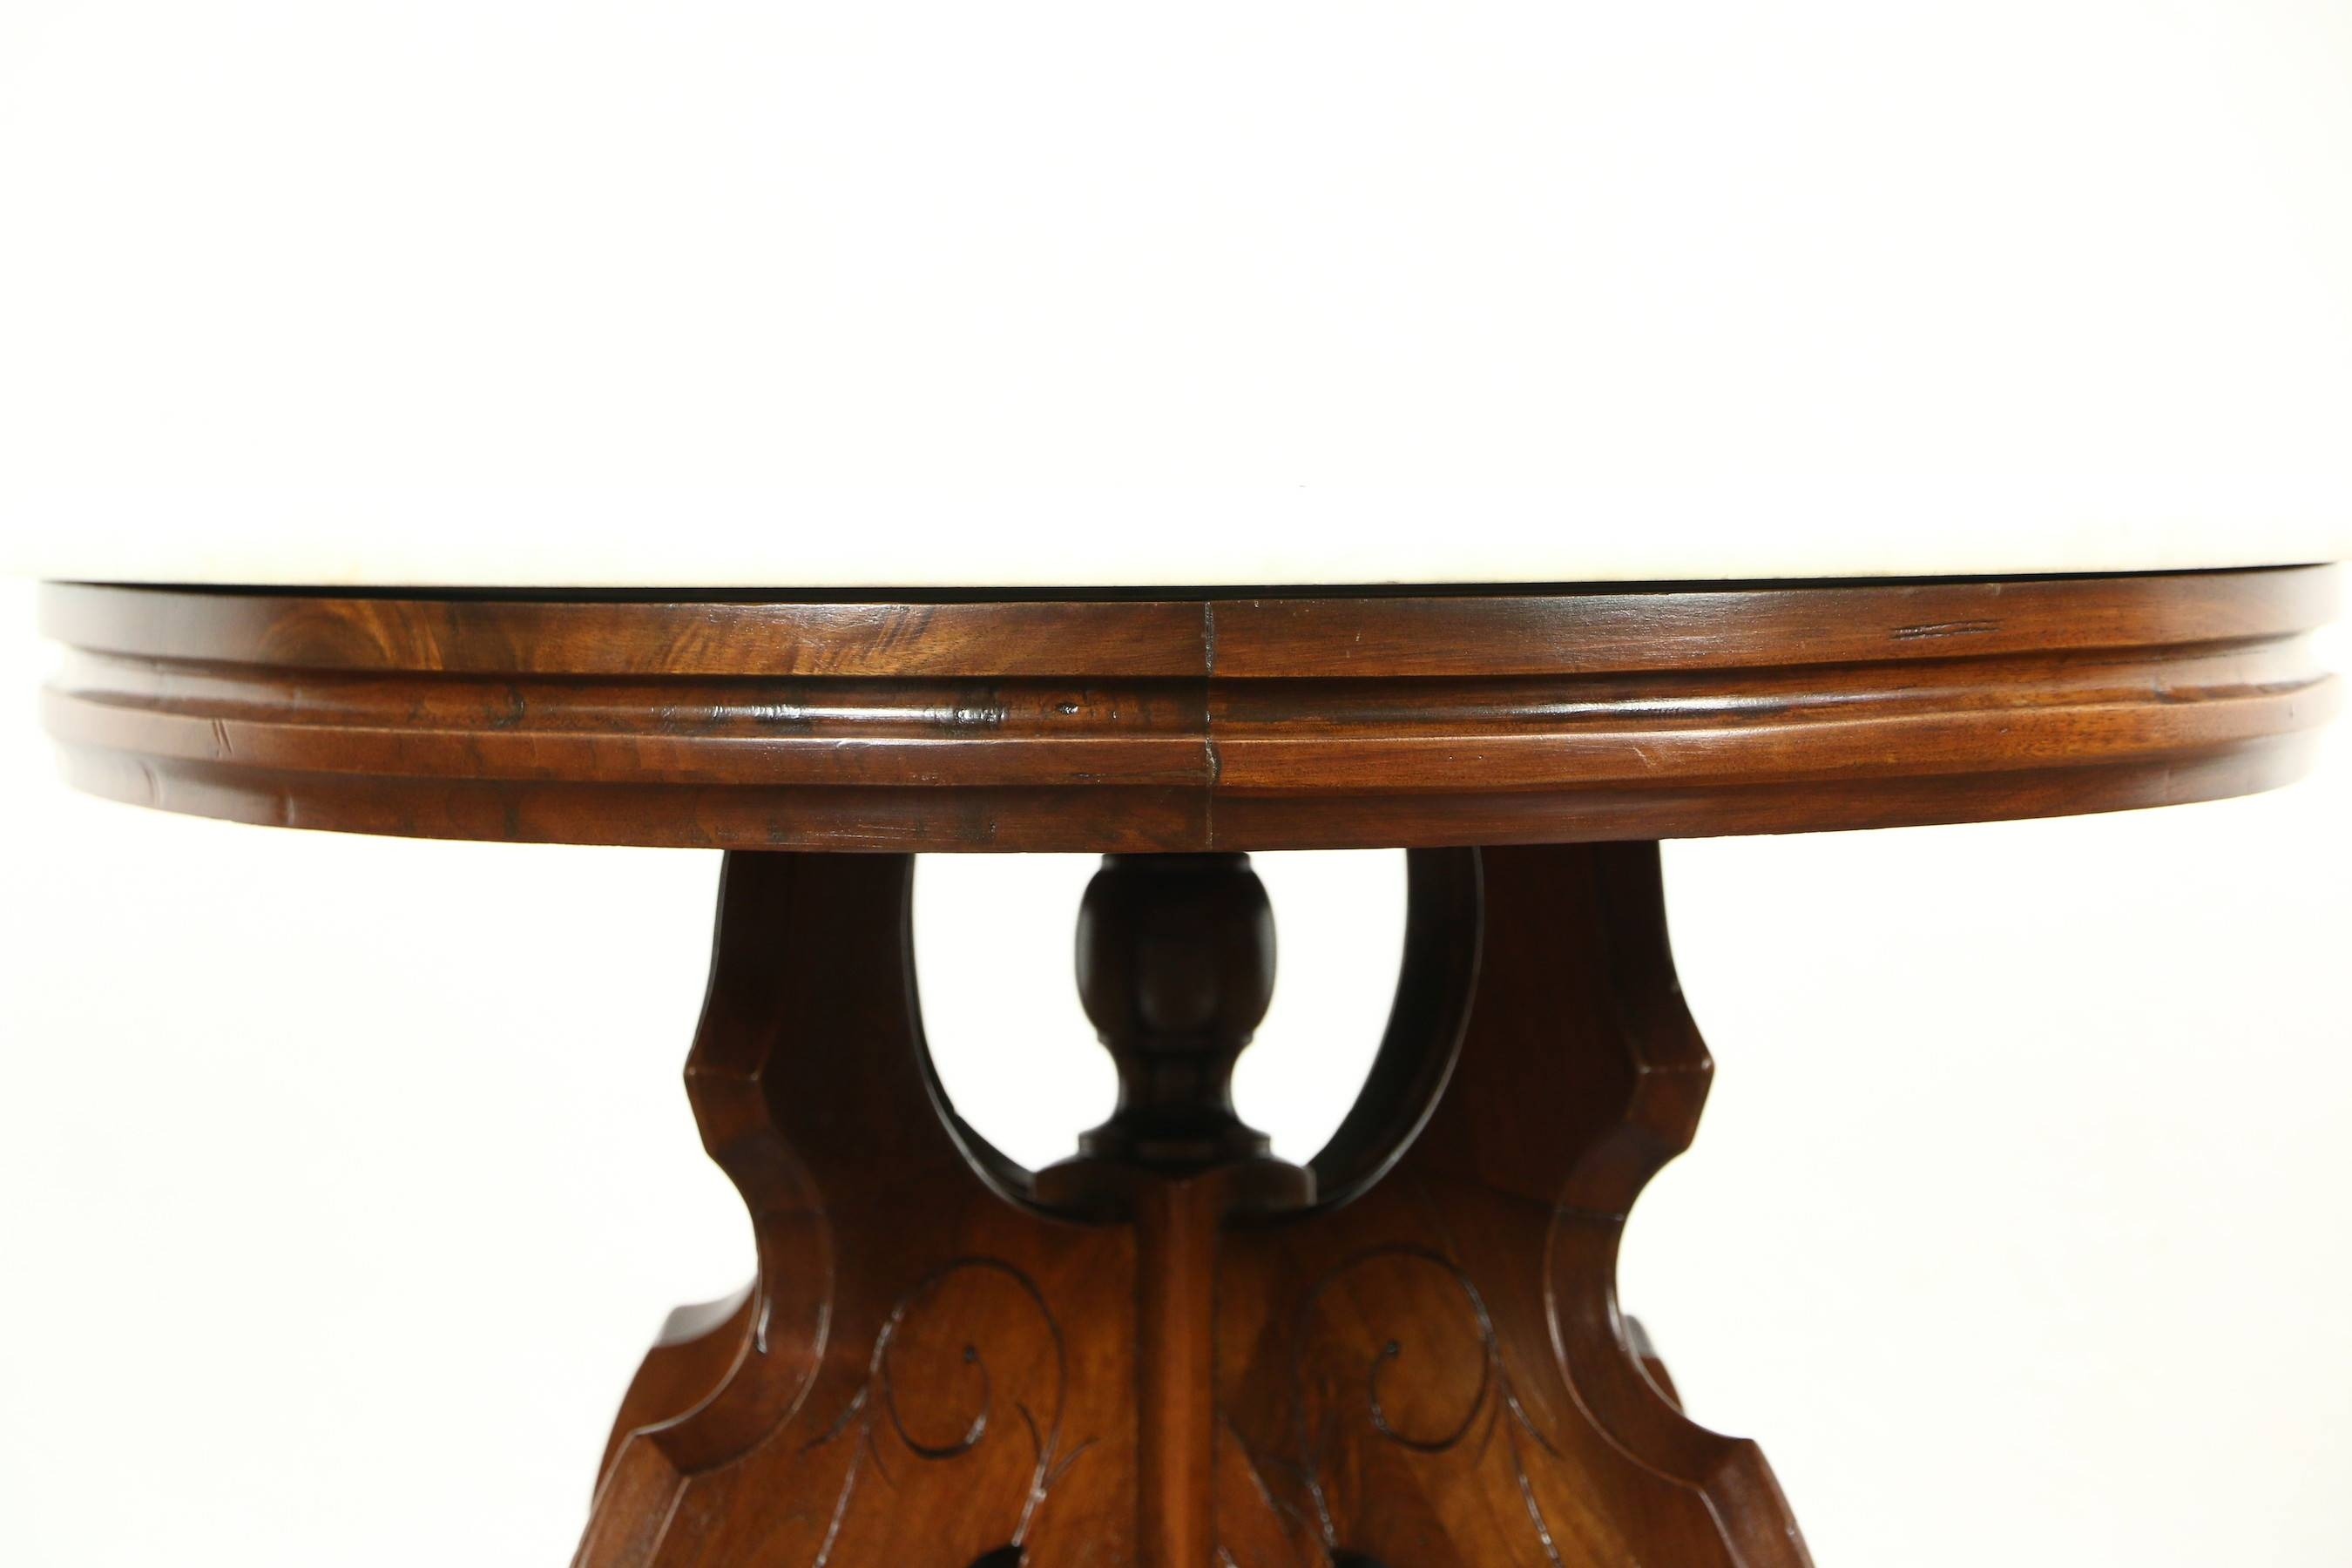 Sold – Victorian 1880's Antique Oval Marble Top Carved Walnut Intended For Oval Walnut Coffee Tables (View 17 of 30)